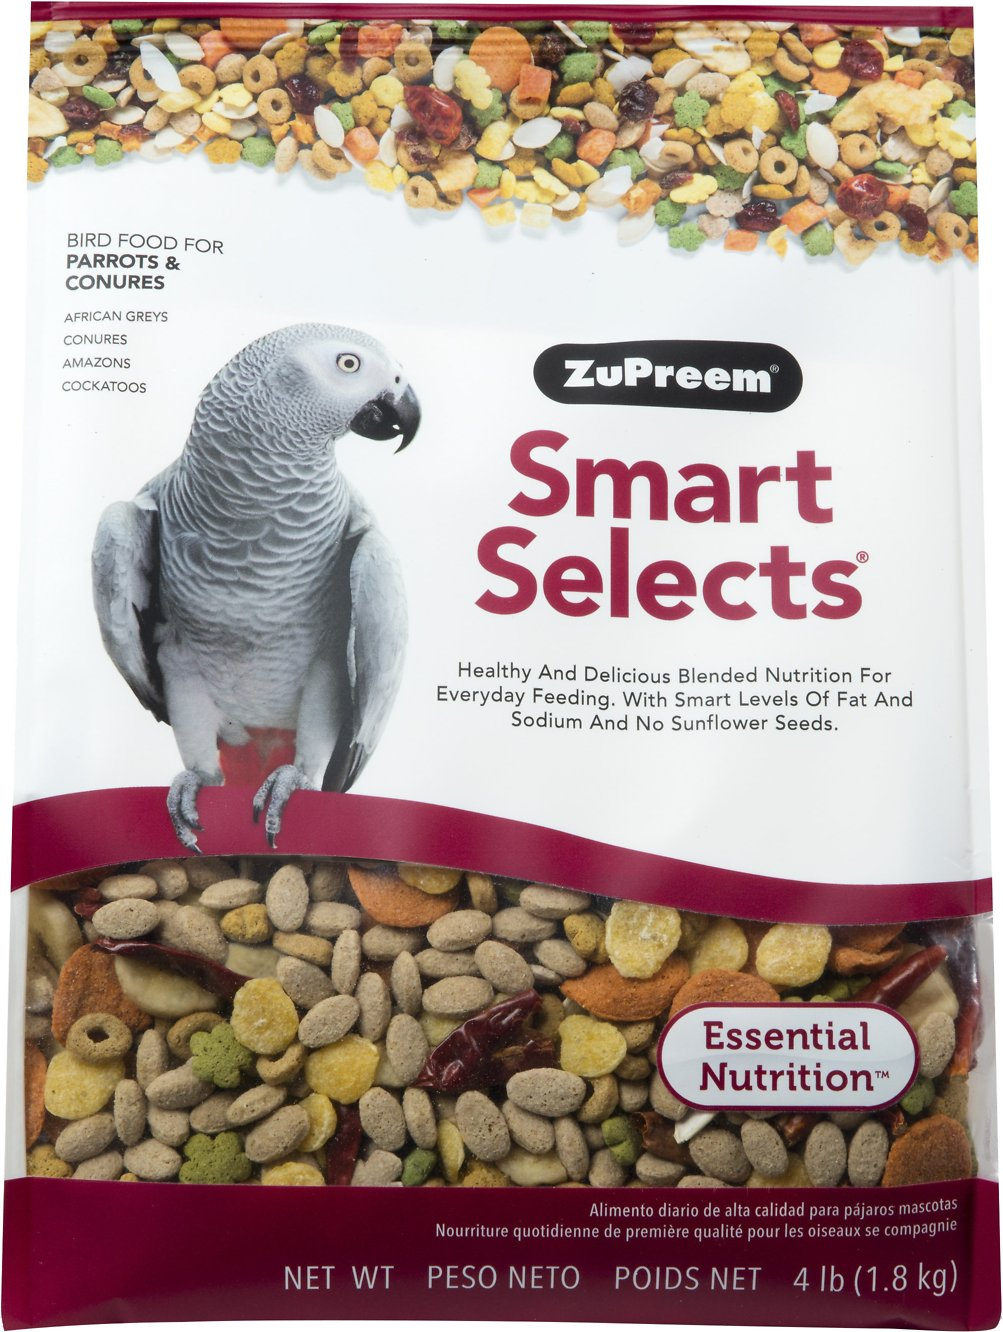 ZuPreem Smart Selects Parrot & Conure Bird Food, 4-lb bag Image